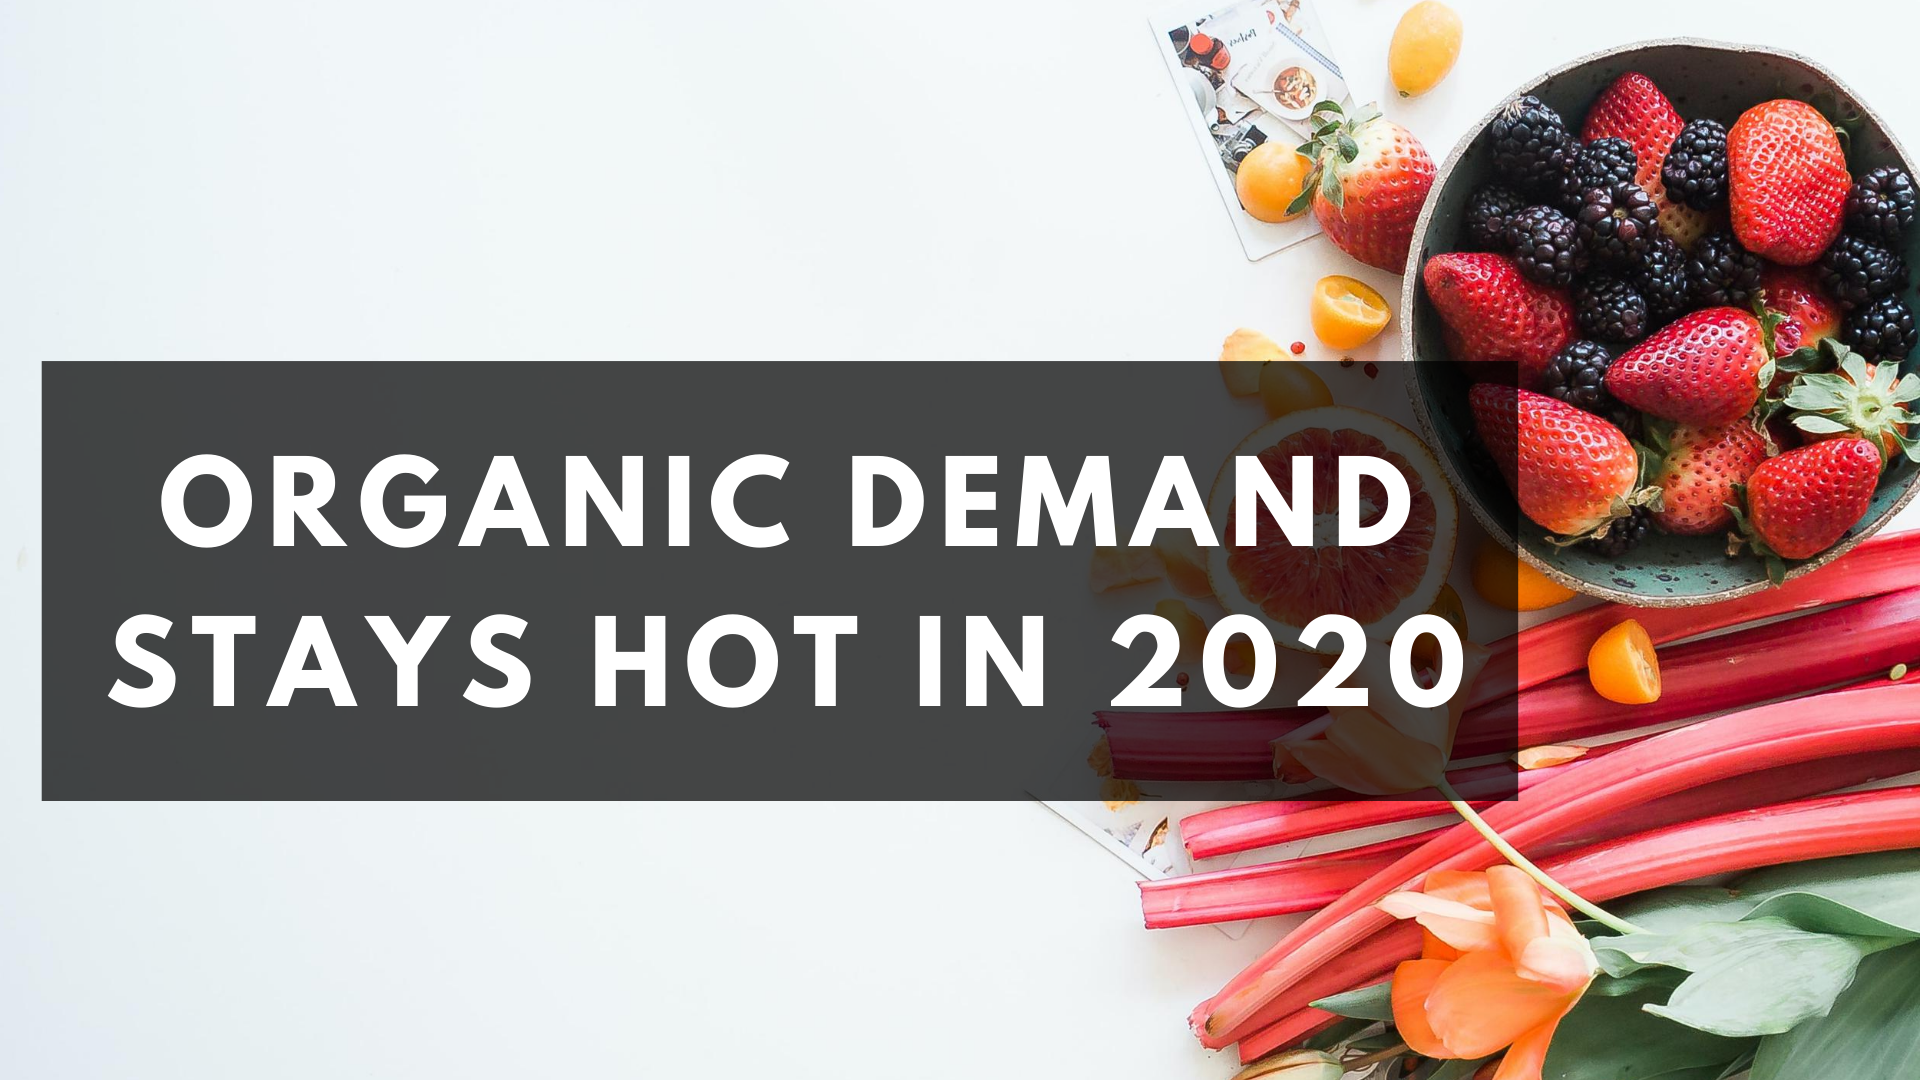 Organic Demand Stays Hot in 2020